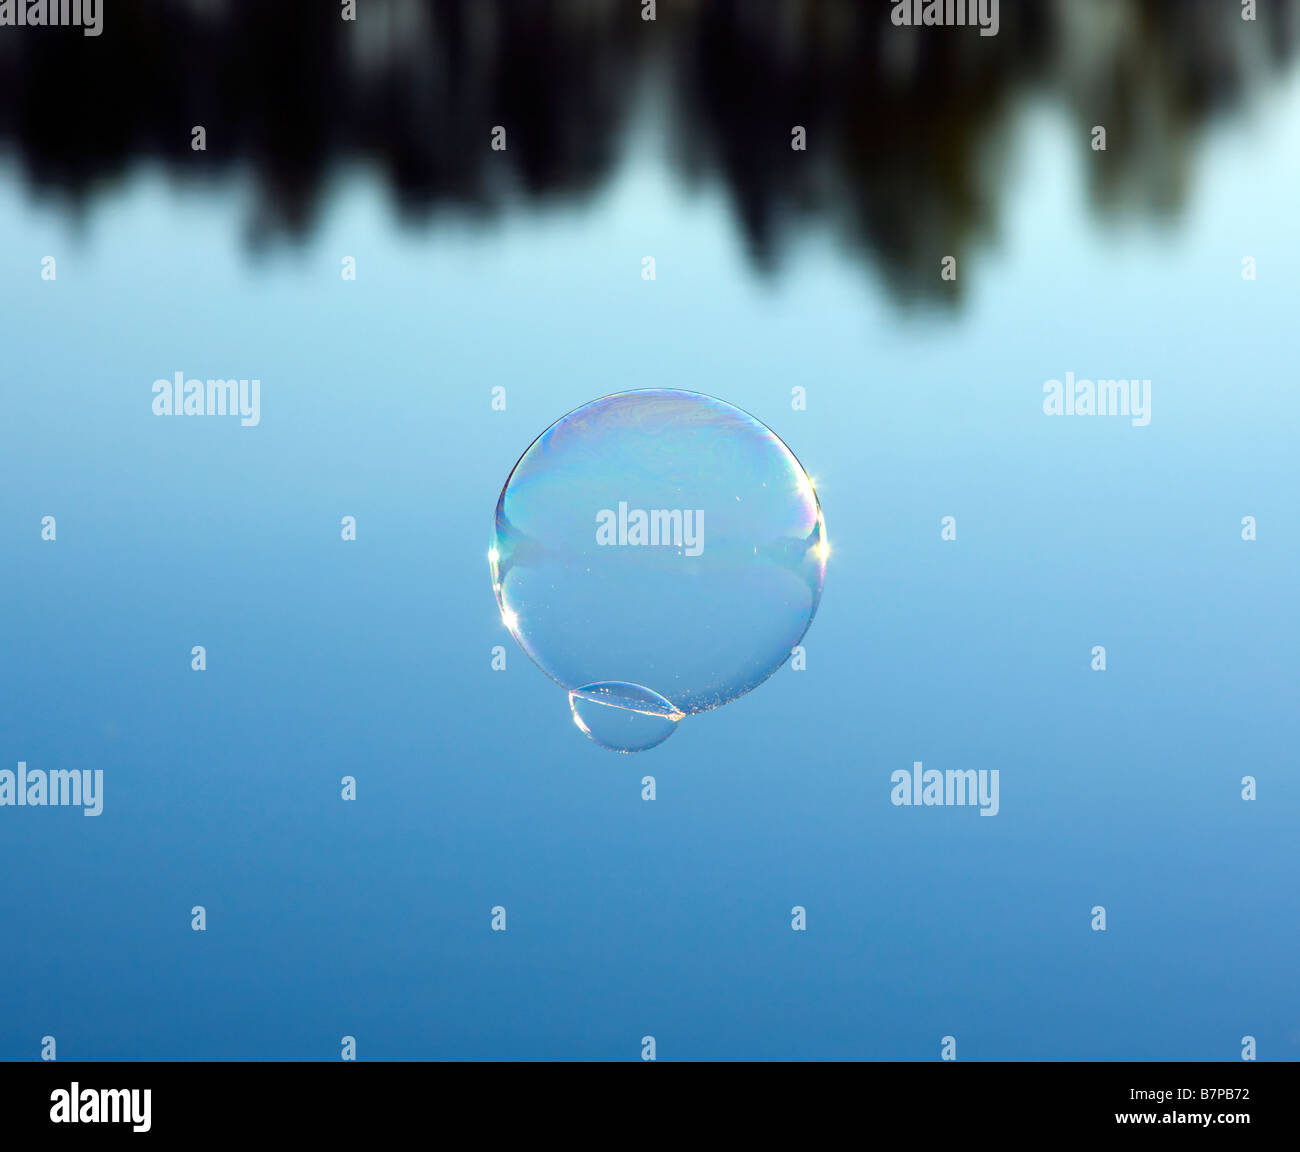 Bubble flies over blue water - Stock Image